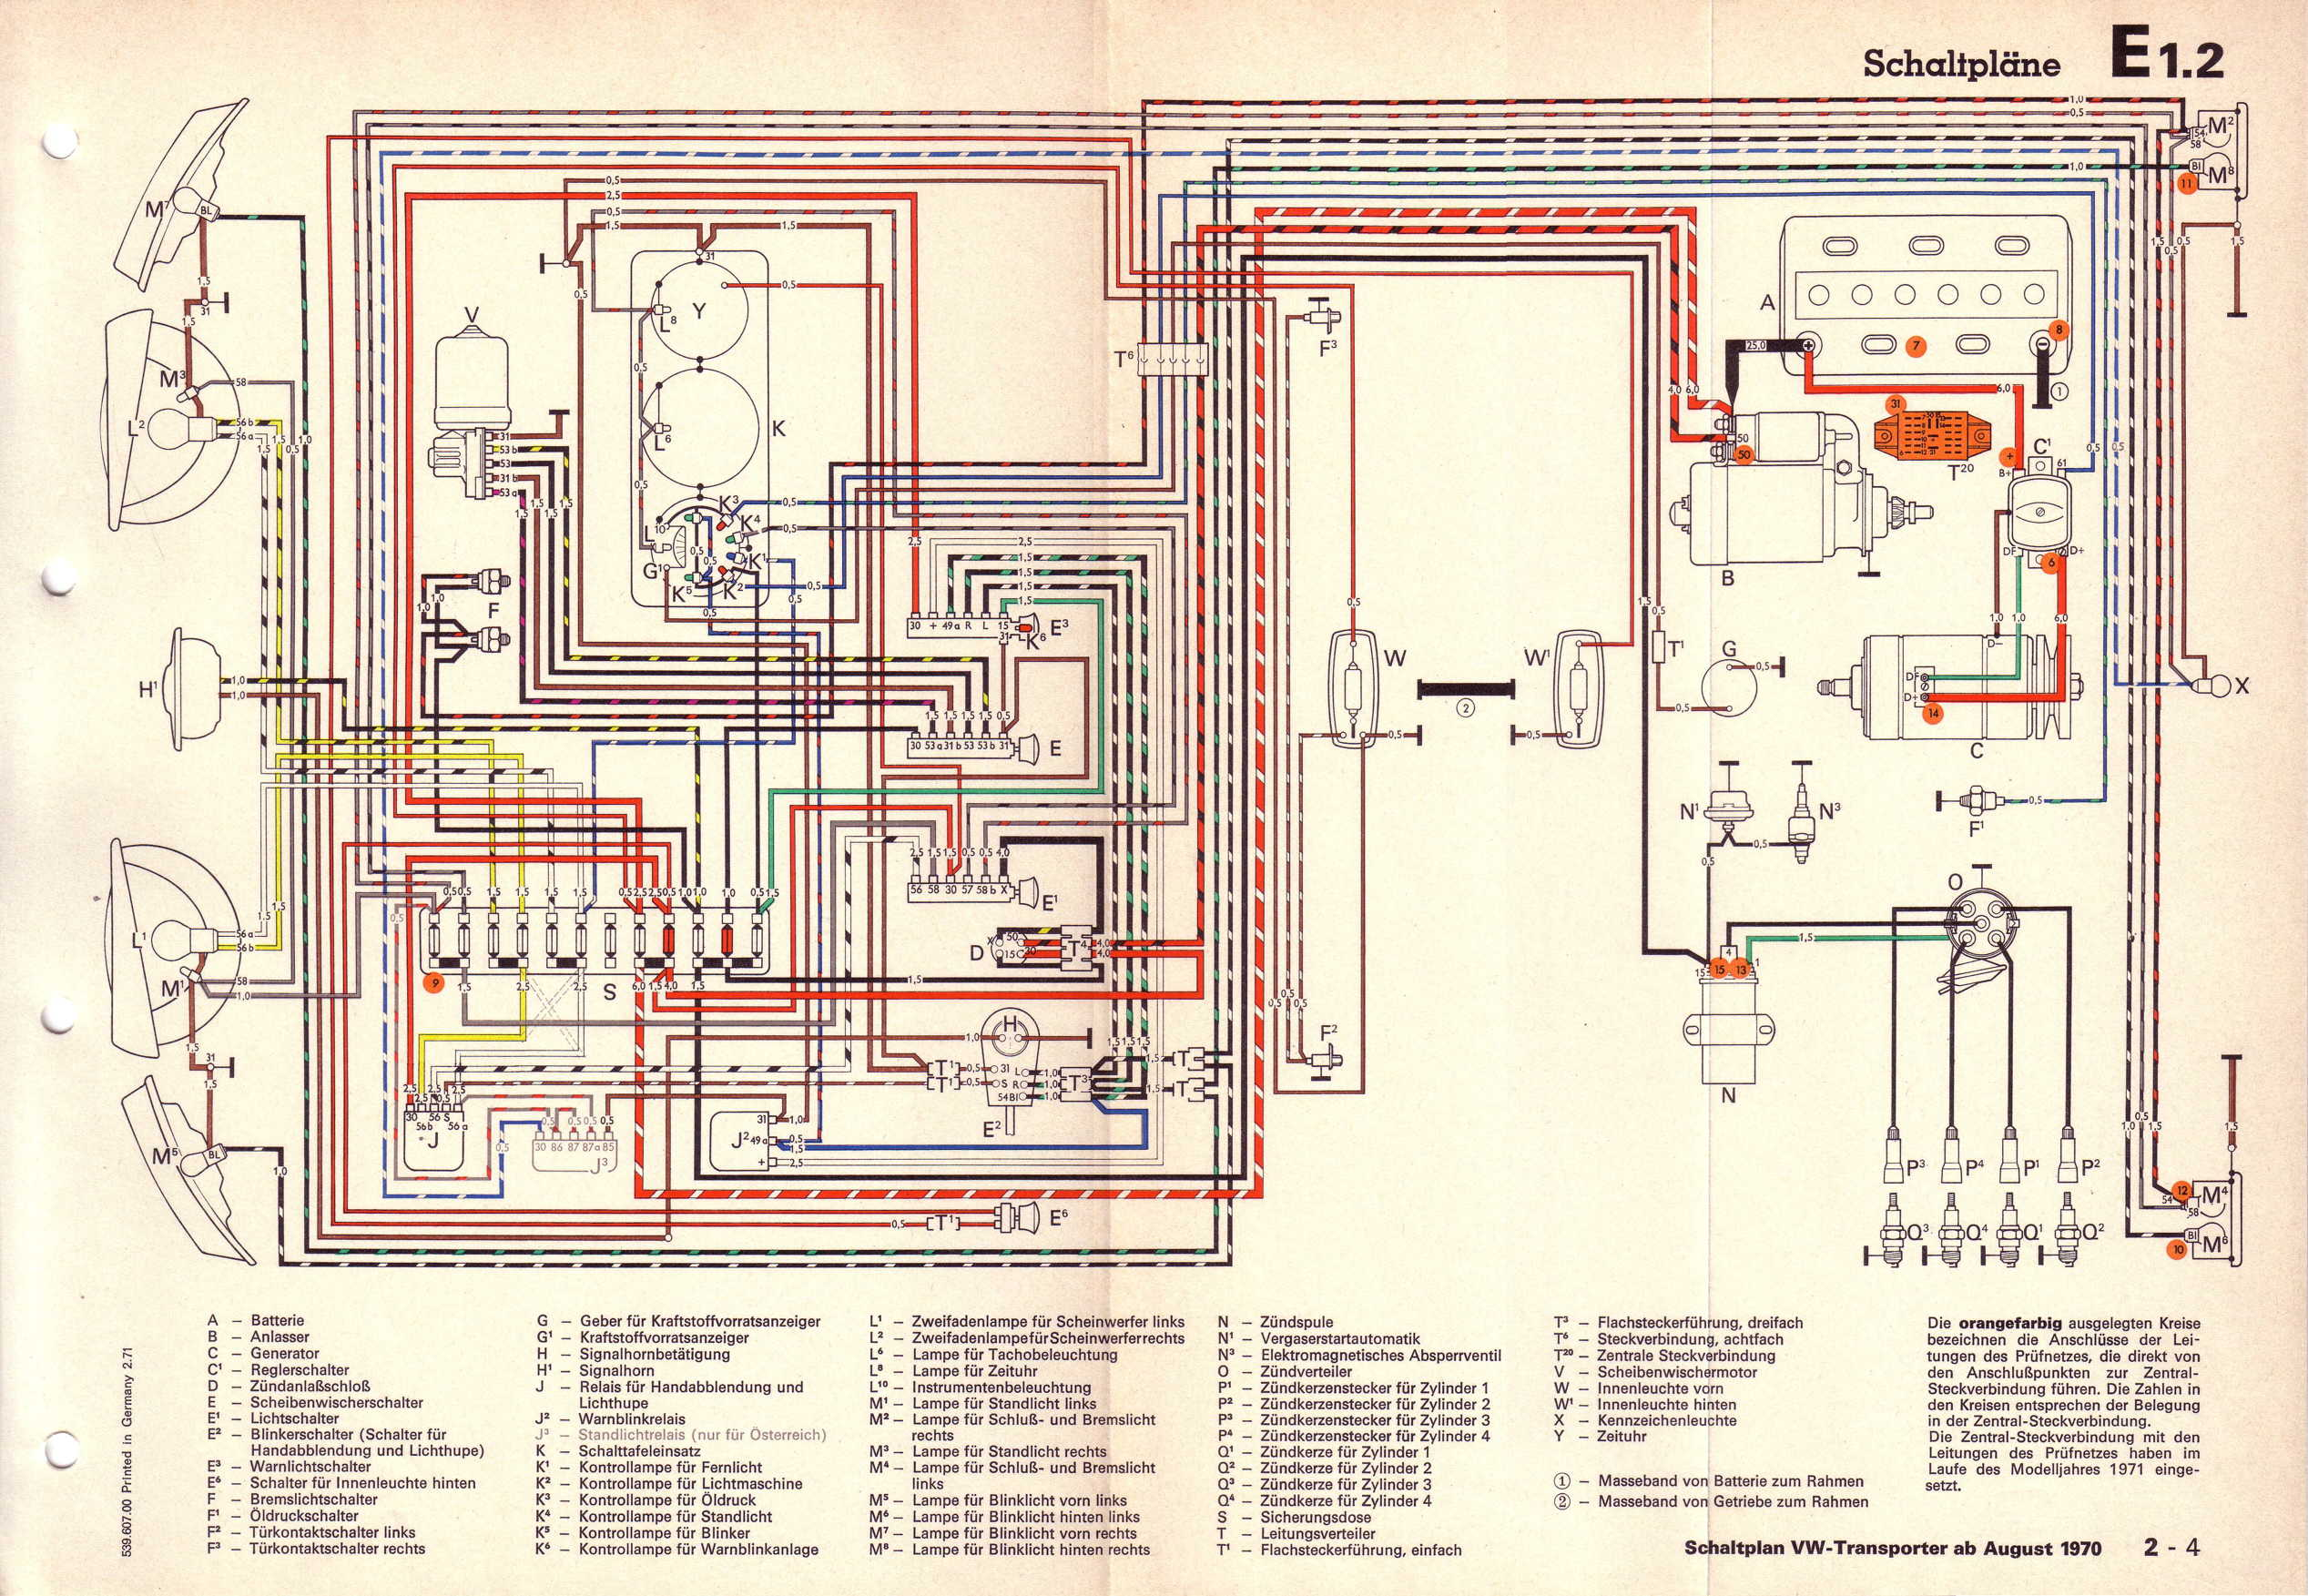 volkswagen t25 wiring diagram ww 0475  vw t5 wiring diagram download download diagram  ww 0475  vw t5 wiring diagram download